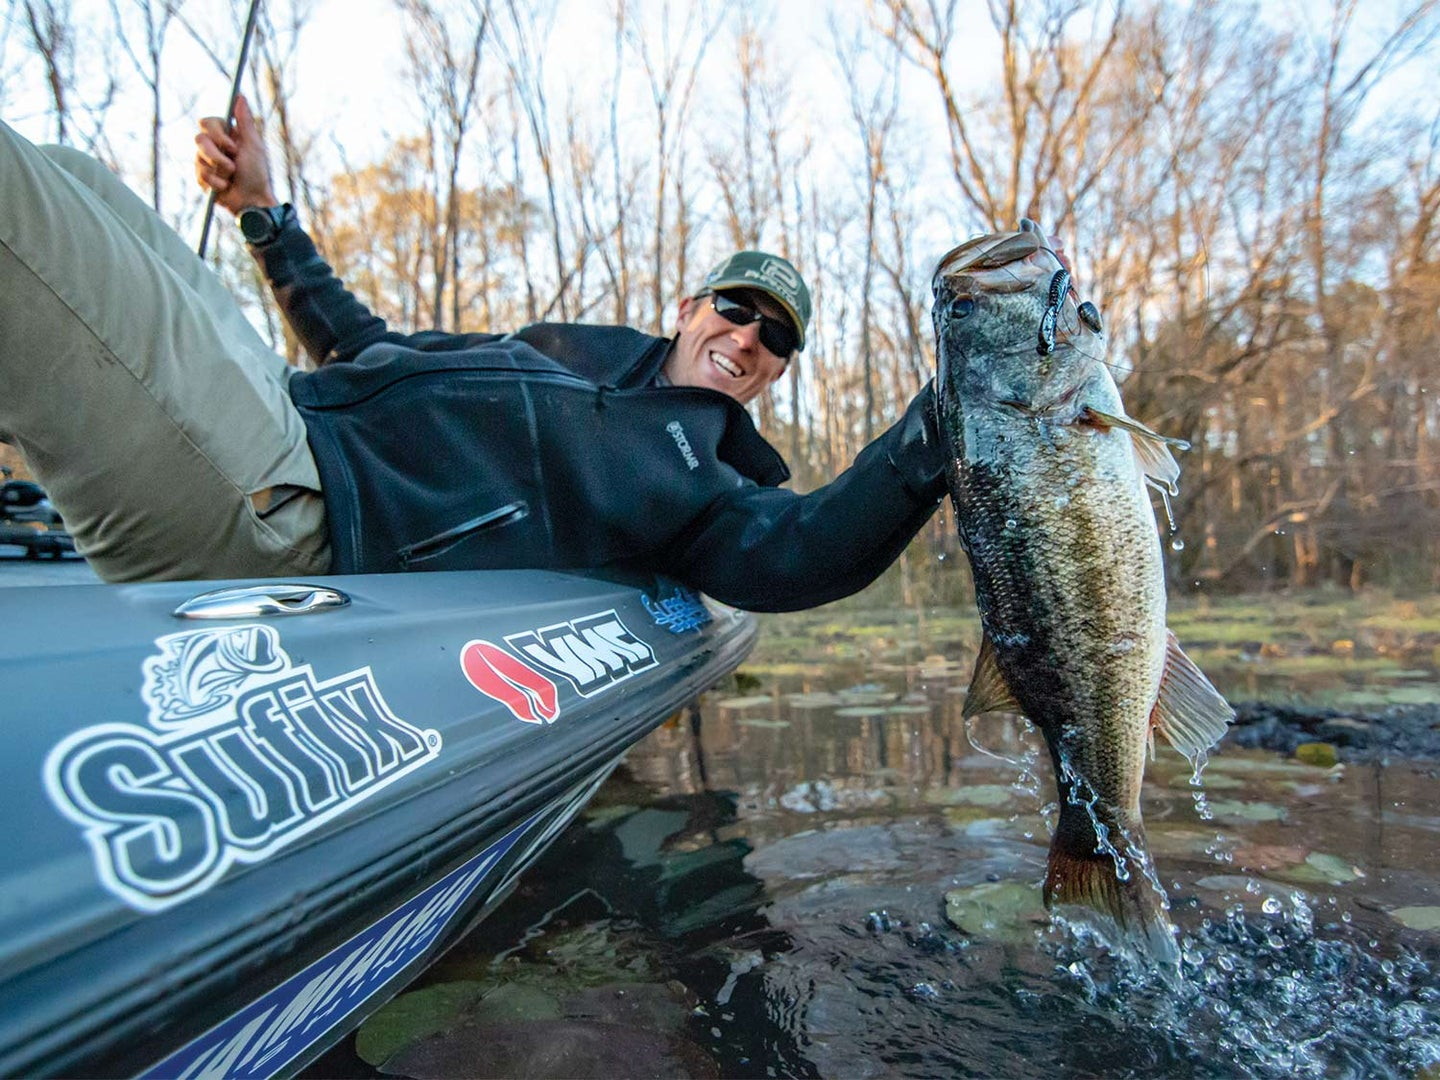 Patrick Walterns on the side of a boat hoisting a largemouth bass from the water.